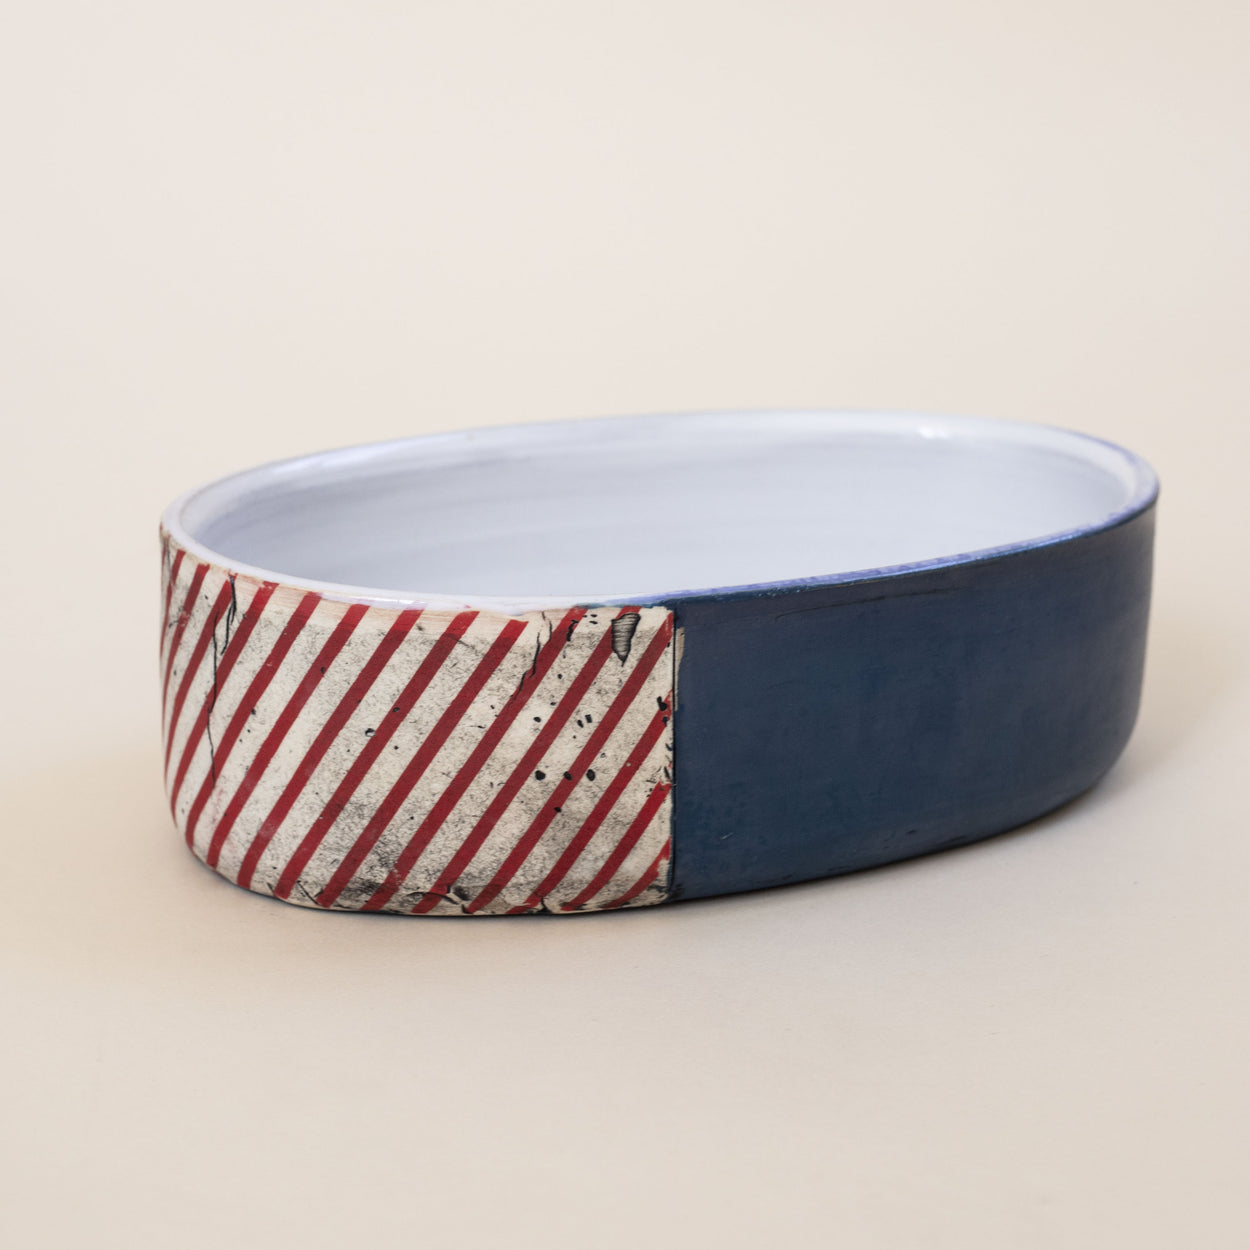 David Kring Ceramics - Bake Dish